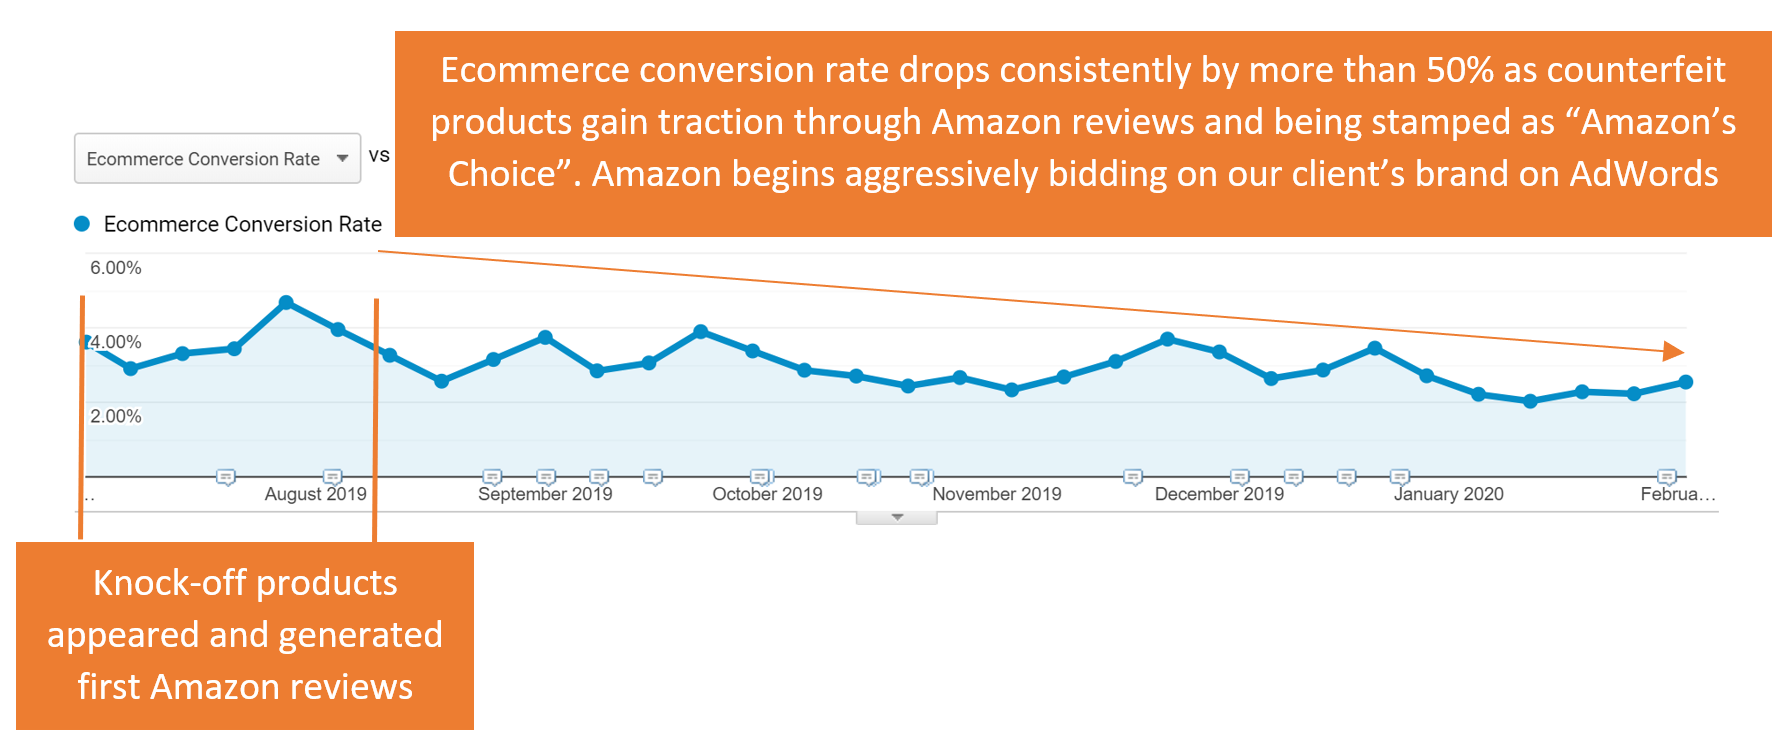 Dipping-Ecommerce-Conversion-Rate-From-Amazon-Fake-Products